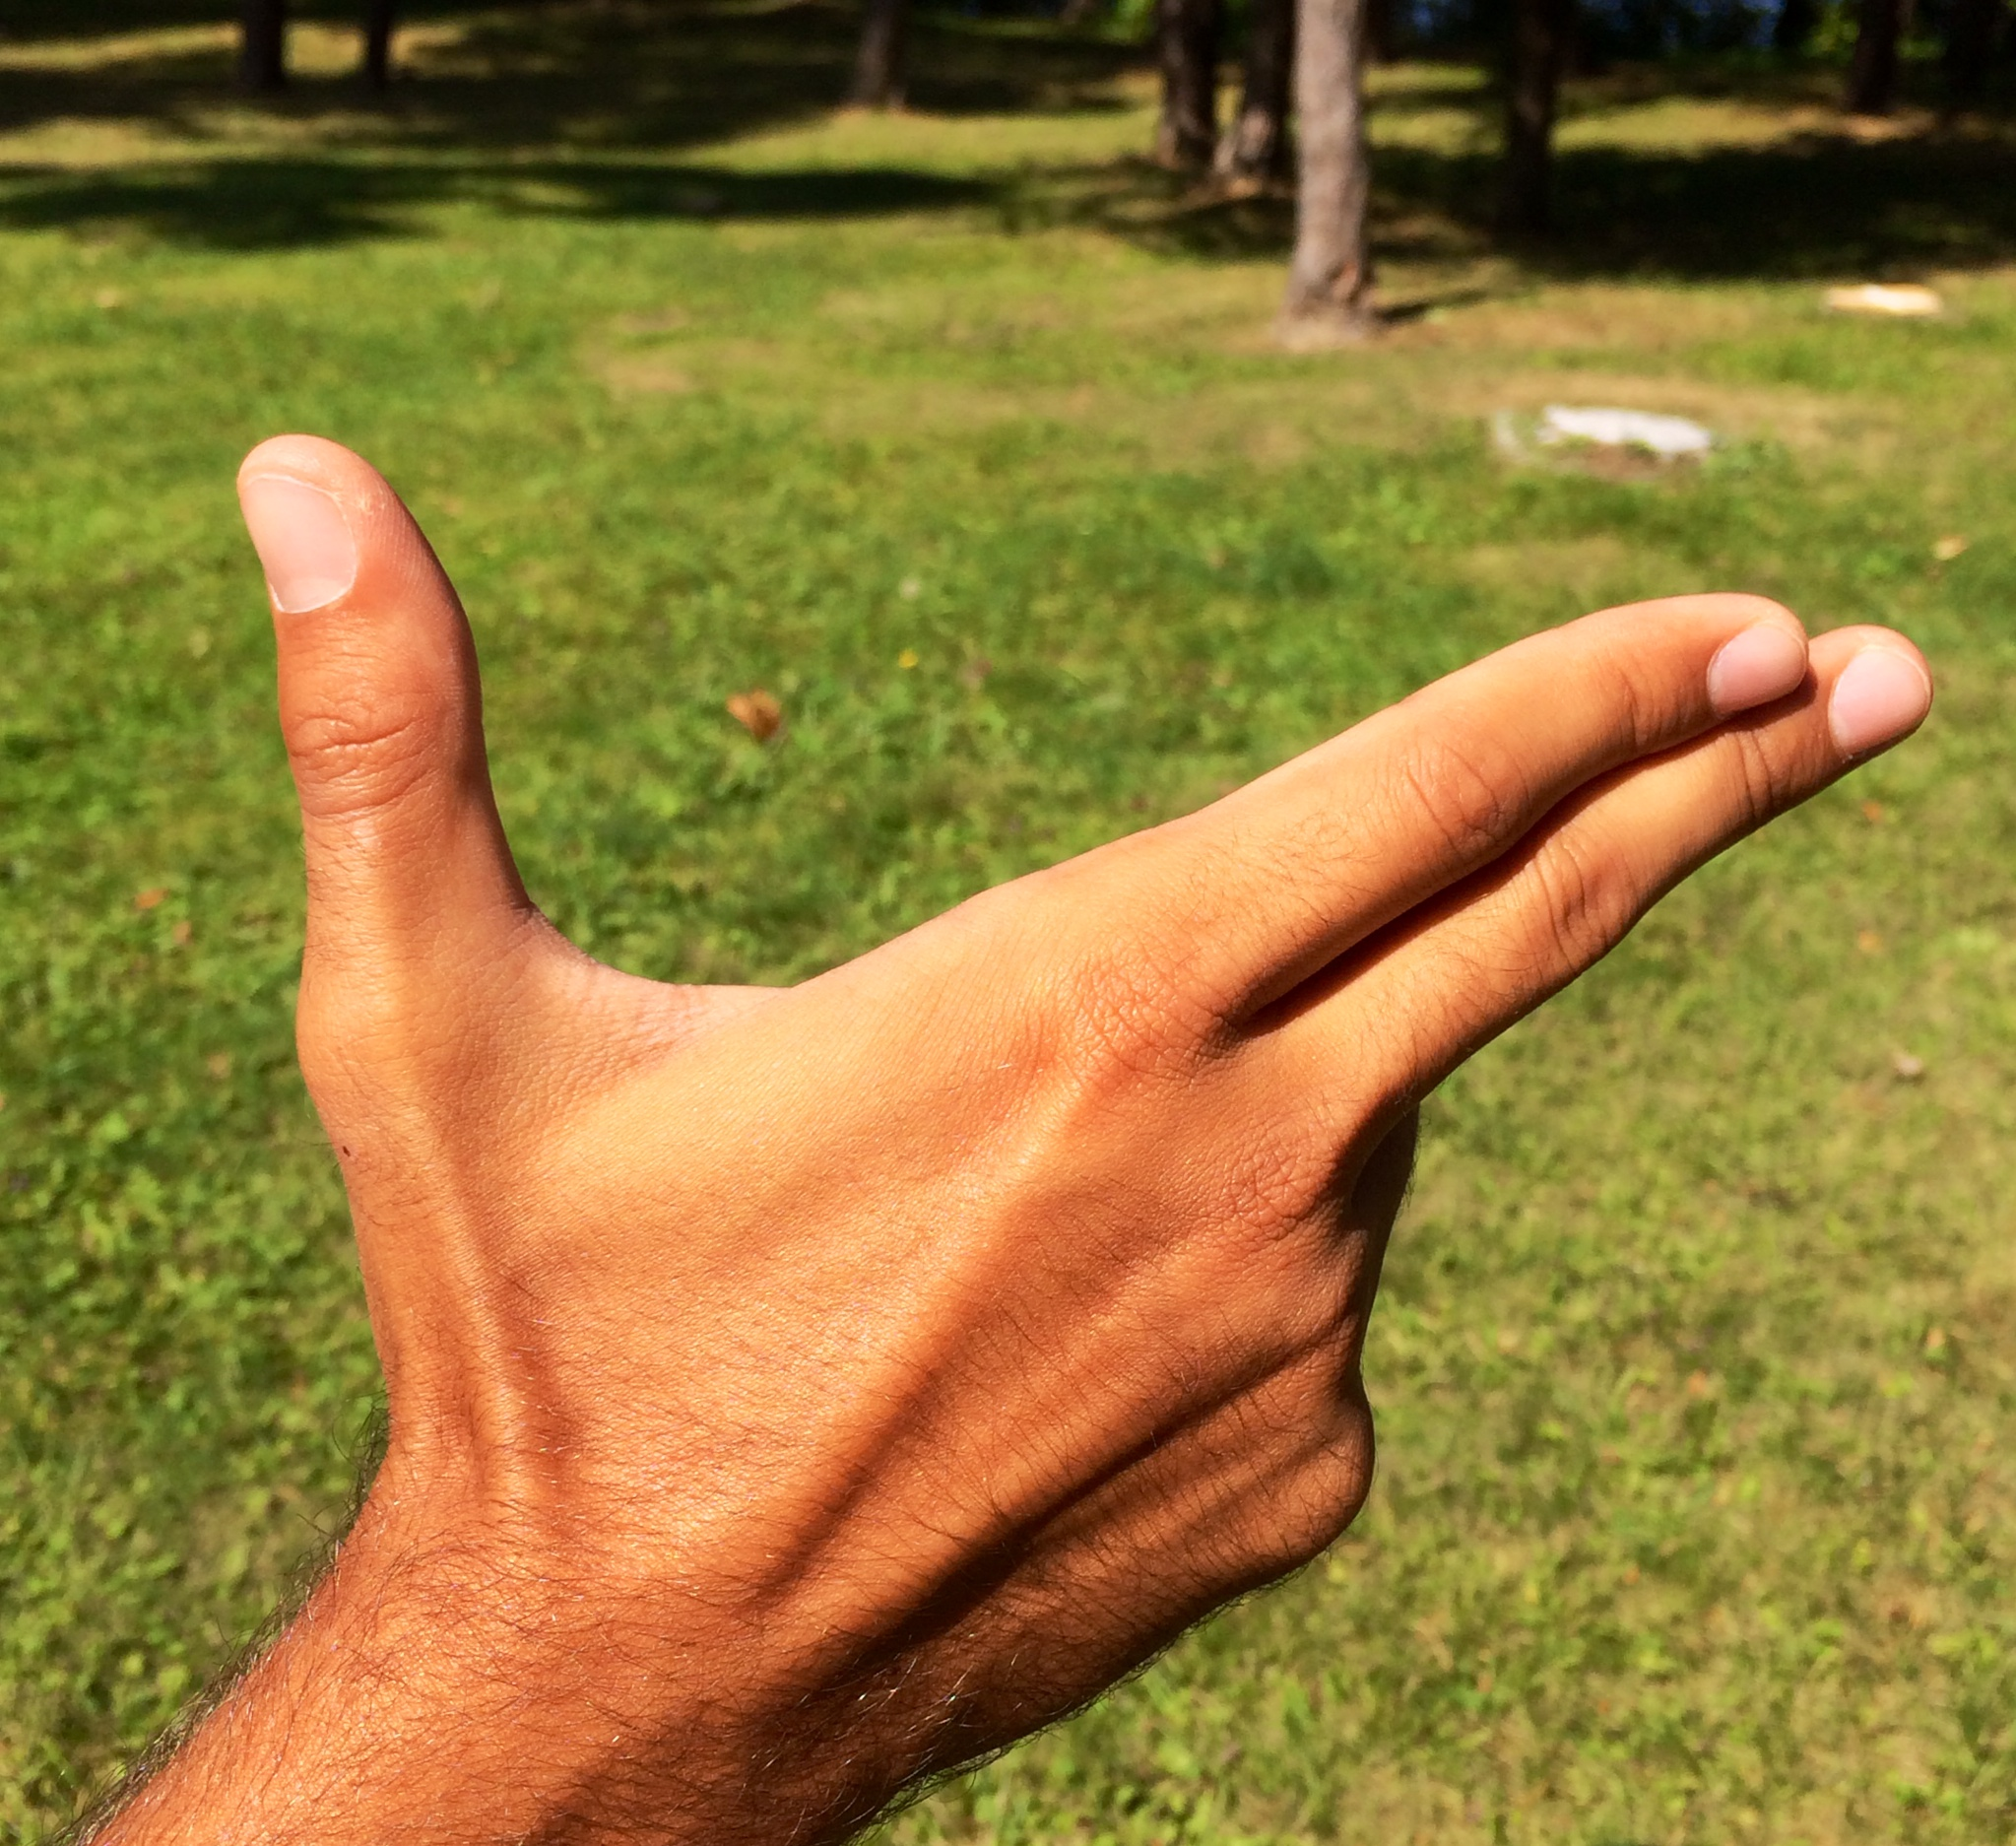 How to hold a forehand